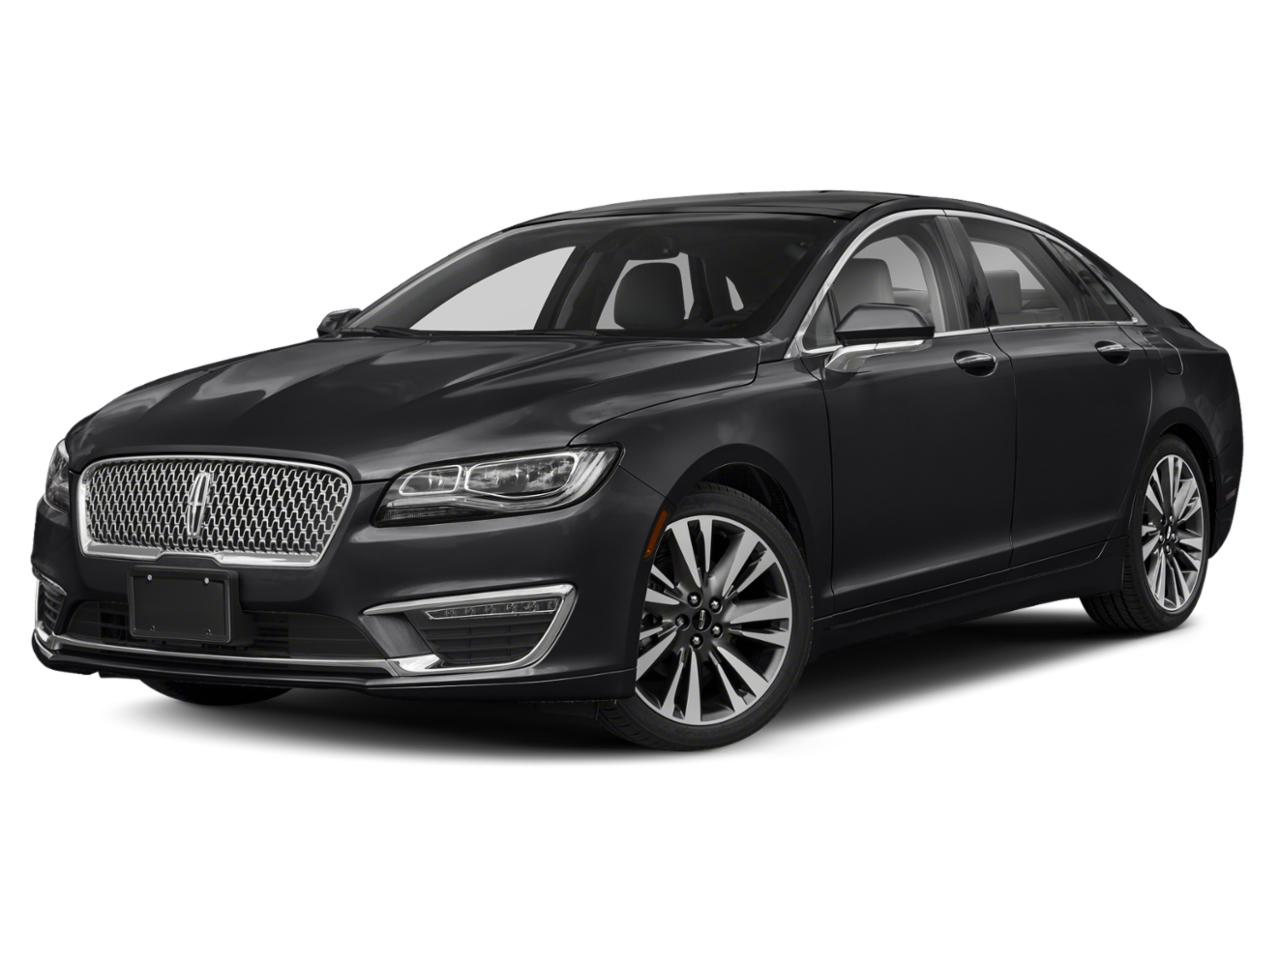 2018 LINCOLN MKZ Vehicle Photo in Odessa, TX 79762